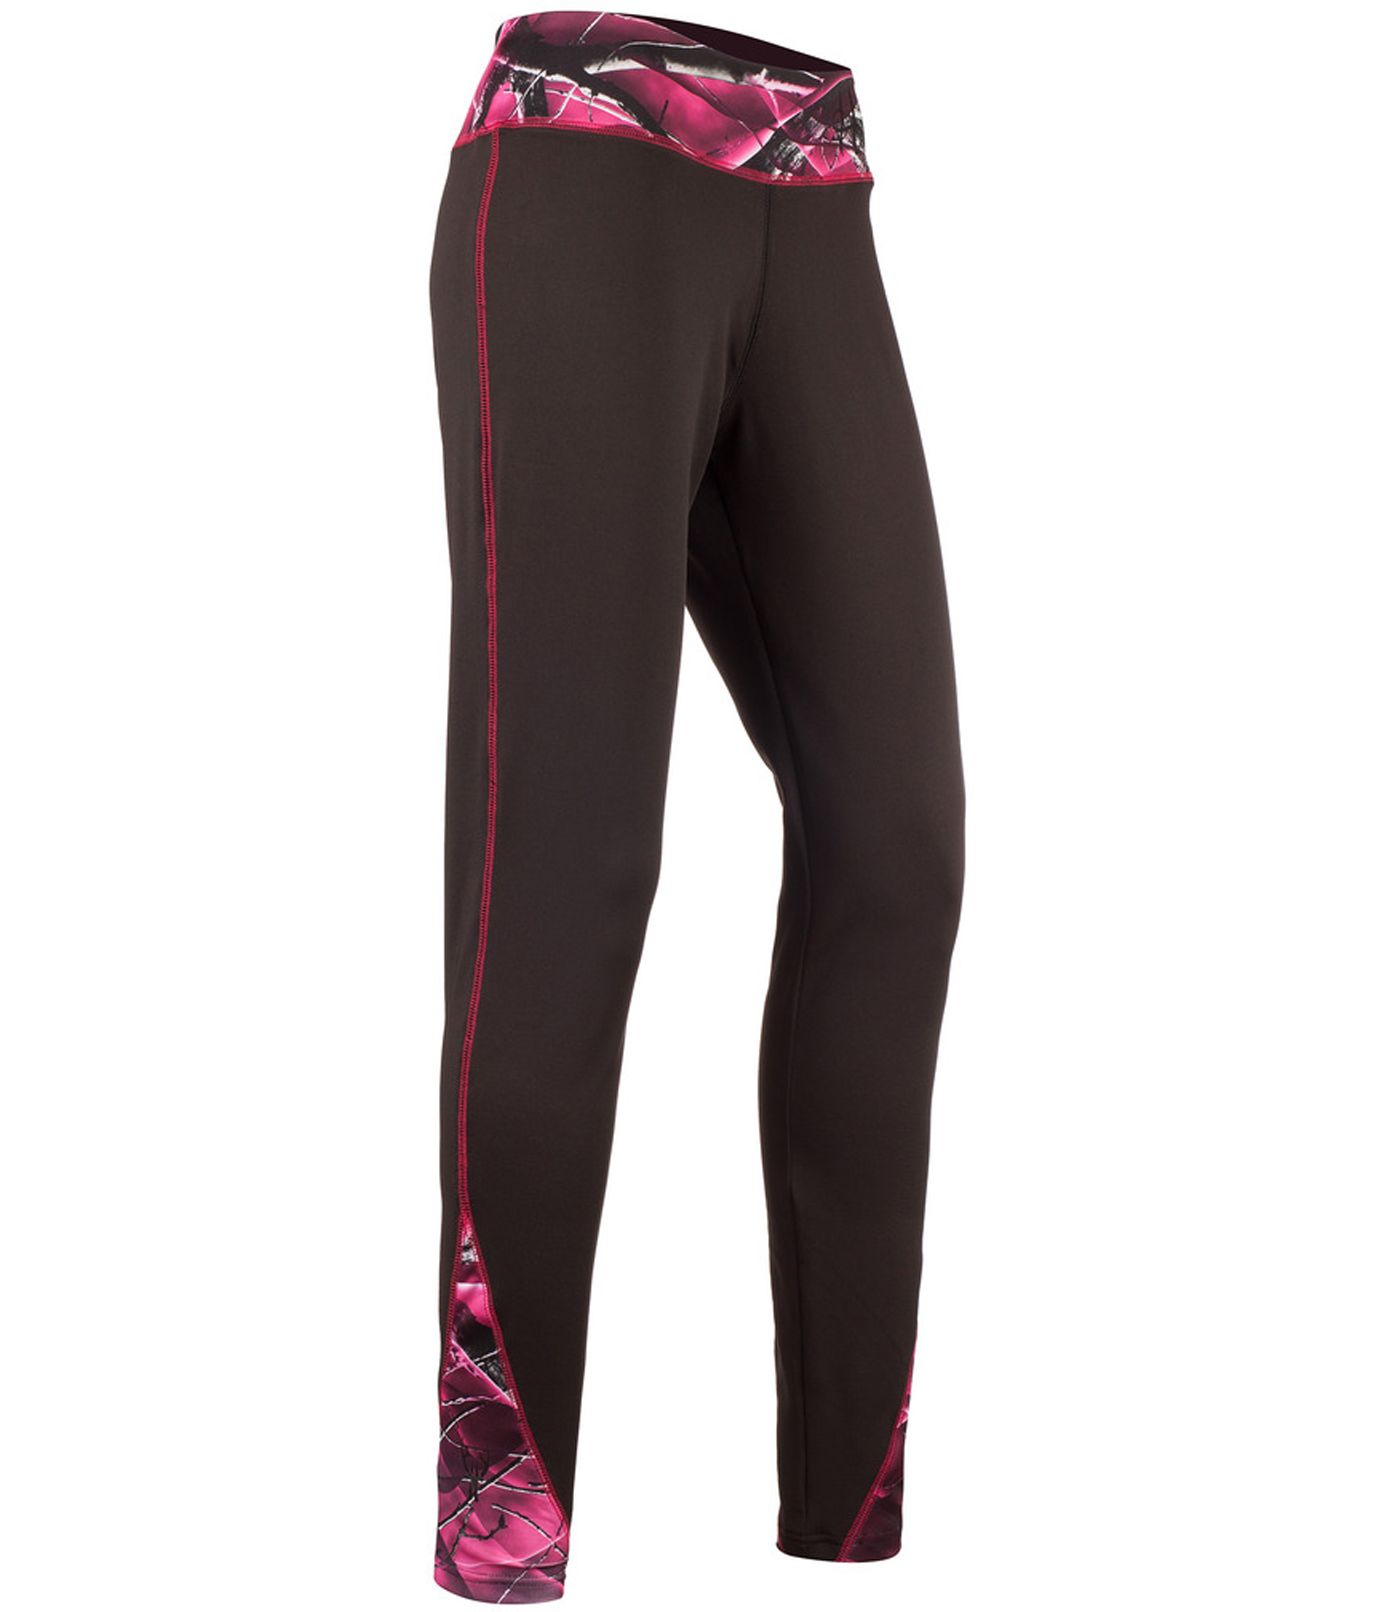 Huntworth Women's Simple Leggings